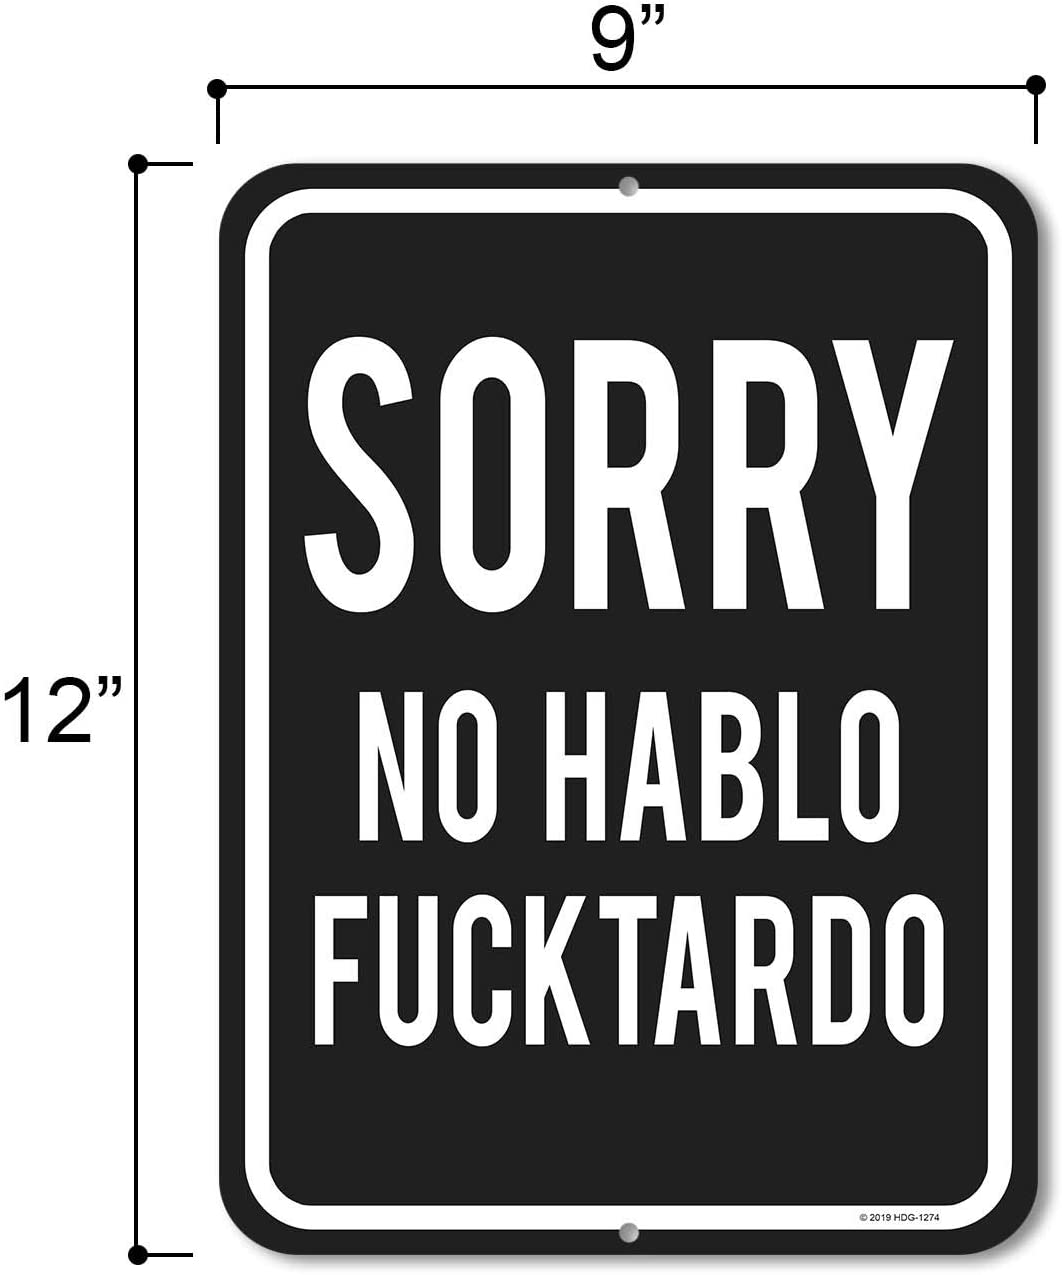 Signs & Plaques Handmade Products Sarcastic Gift for Home or ...